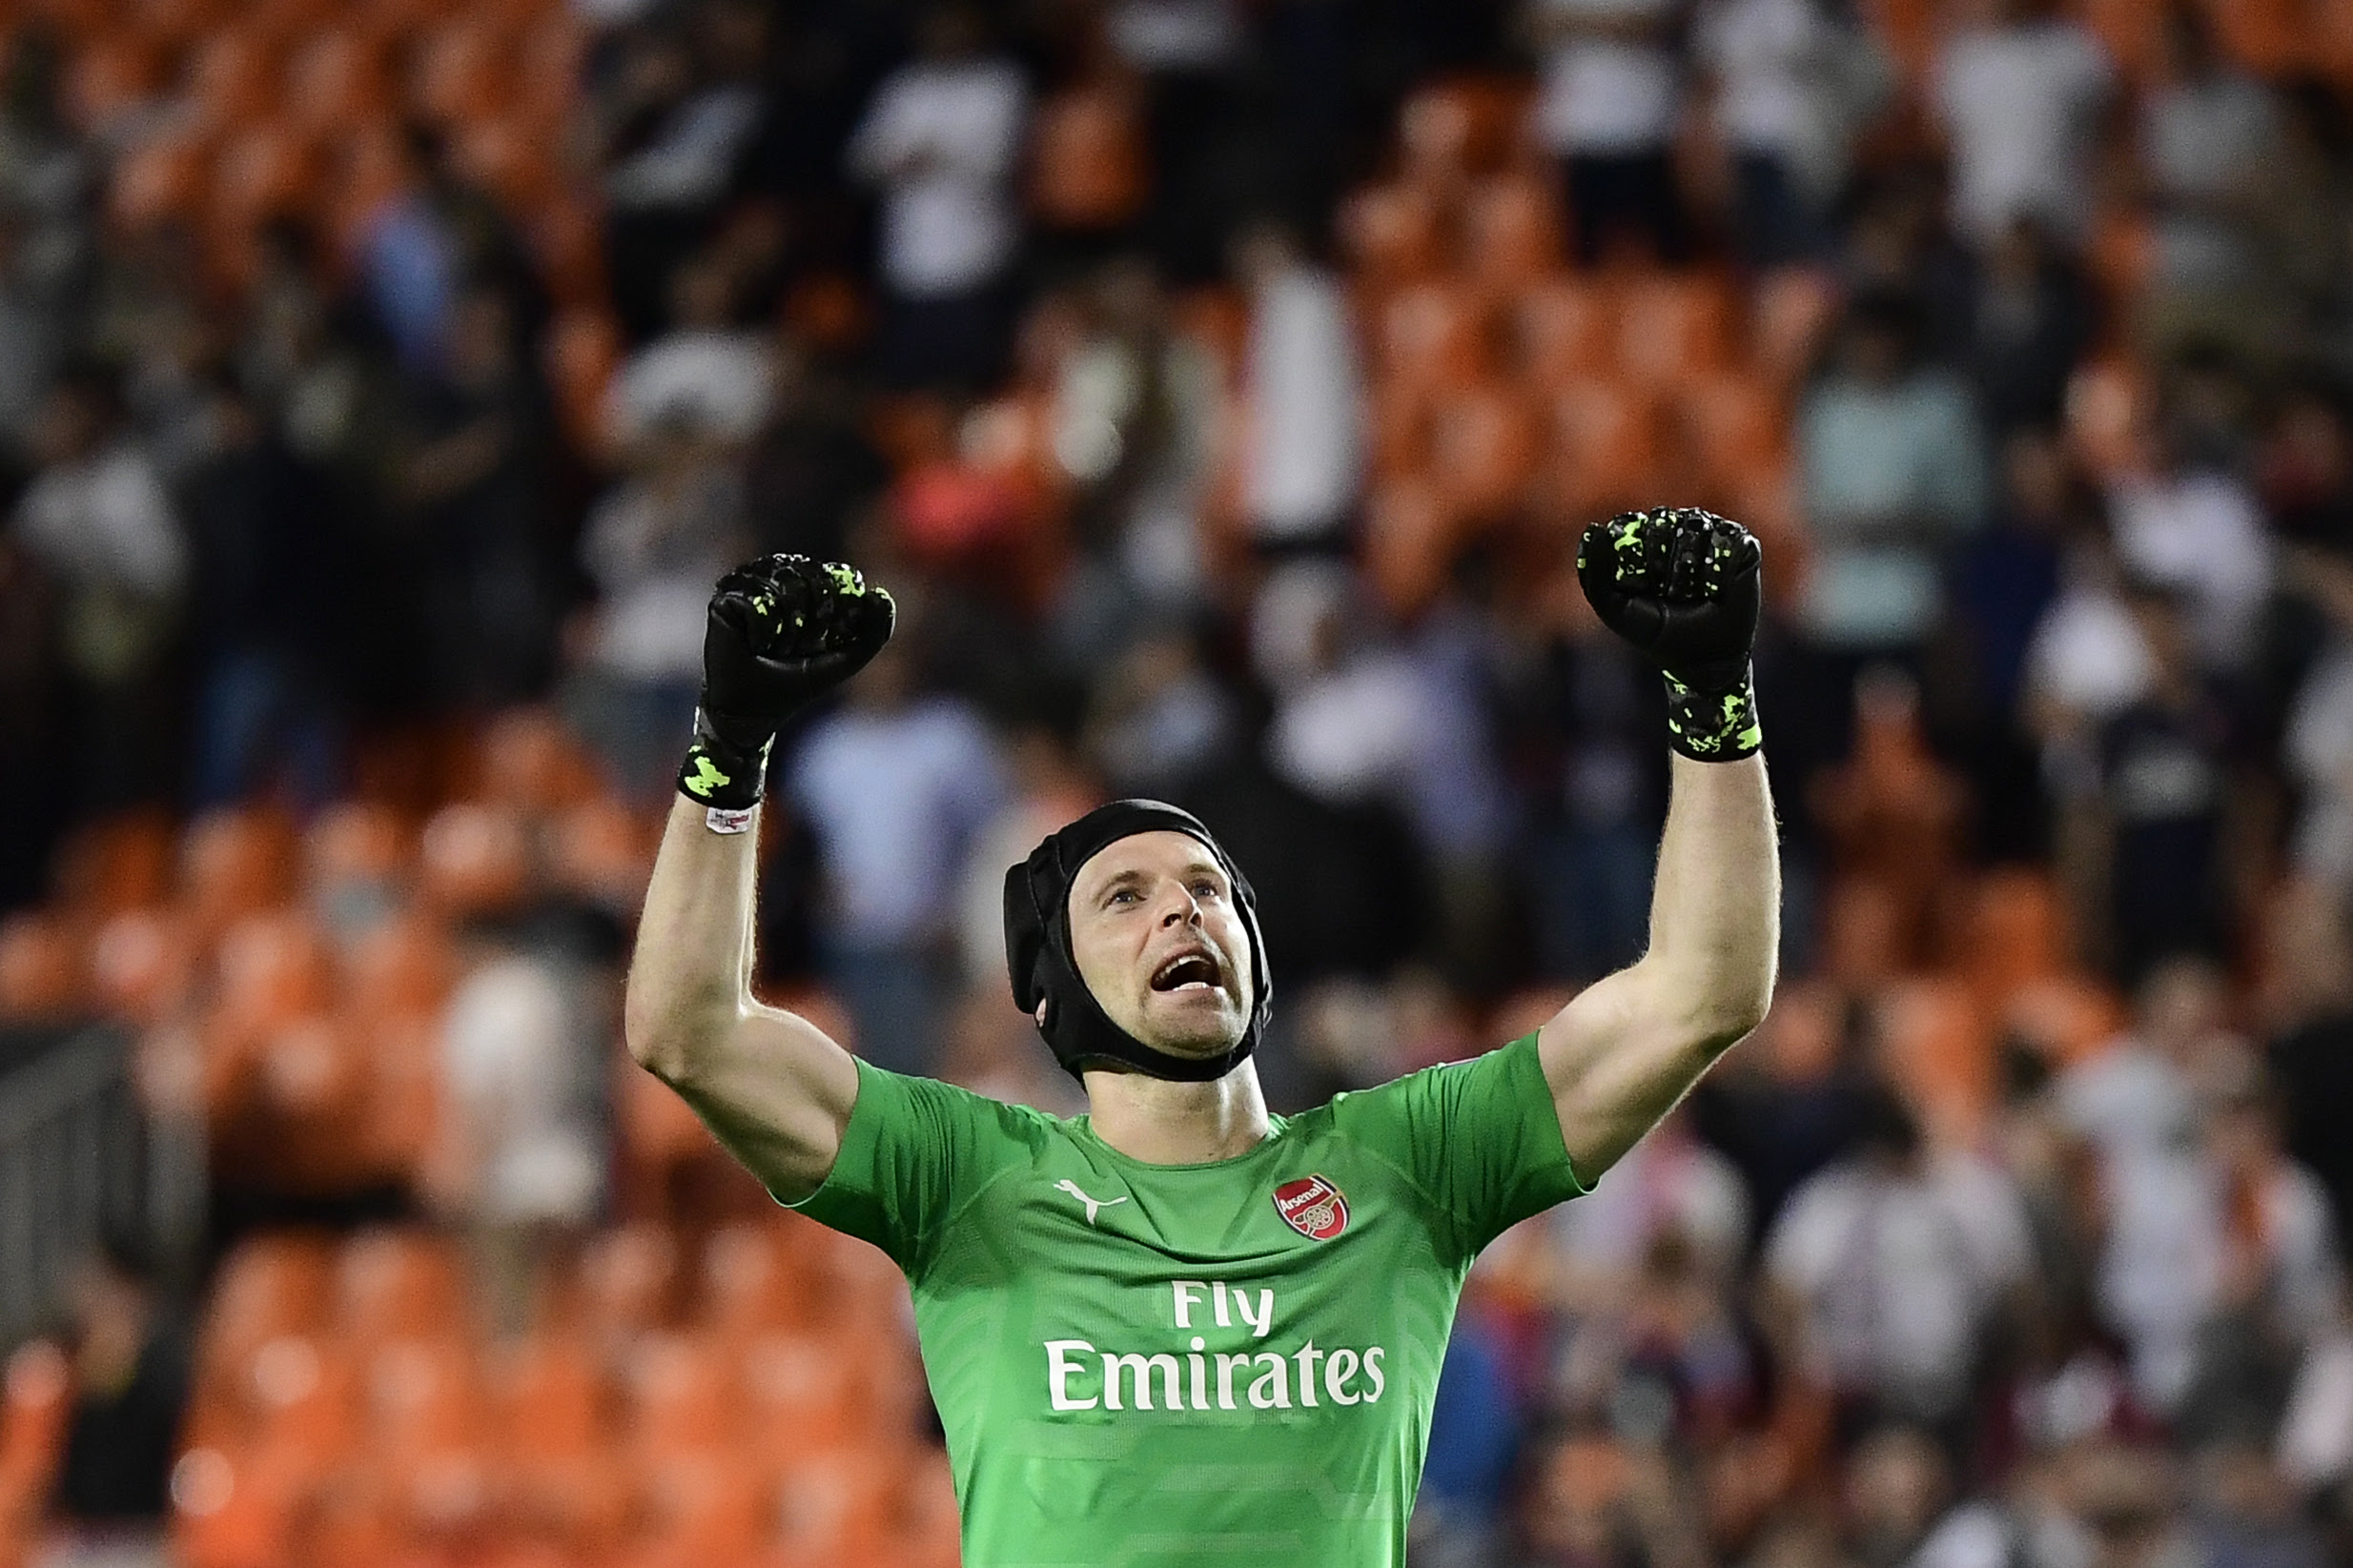 Cech aiming to bow out on a high note. (Photo courtesy: AFP/Getty)